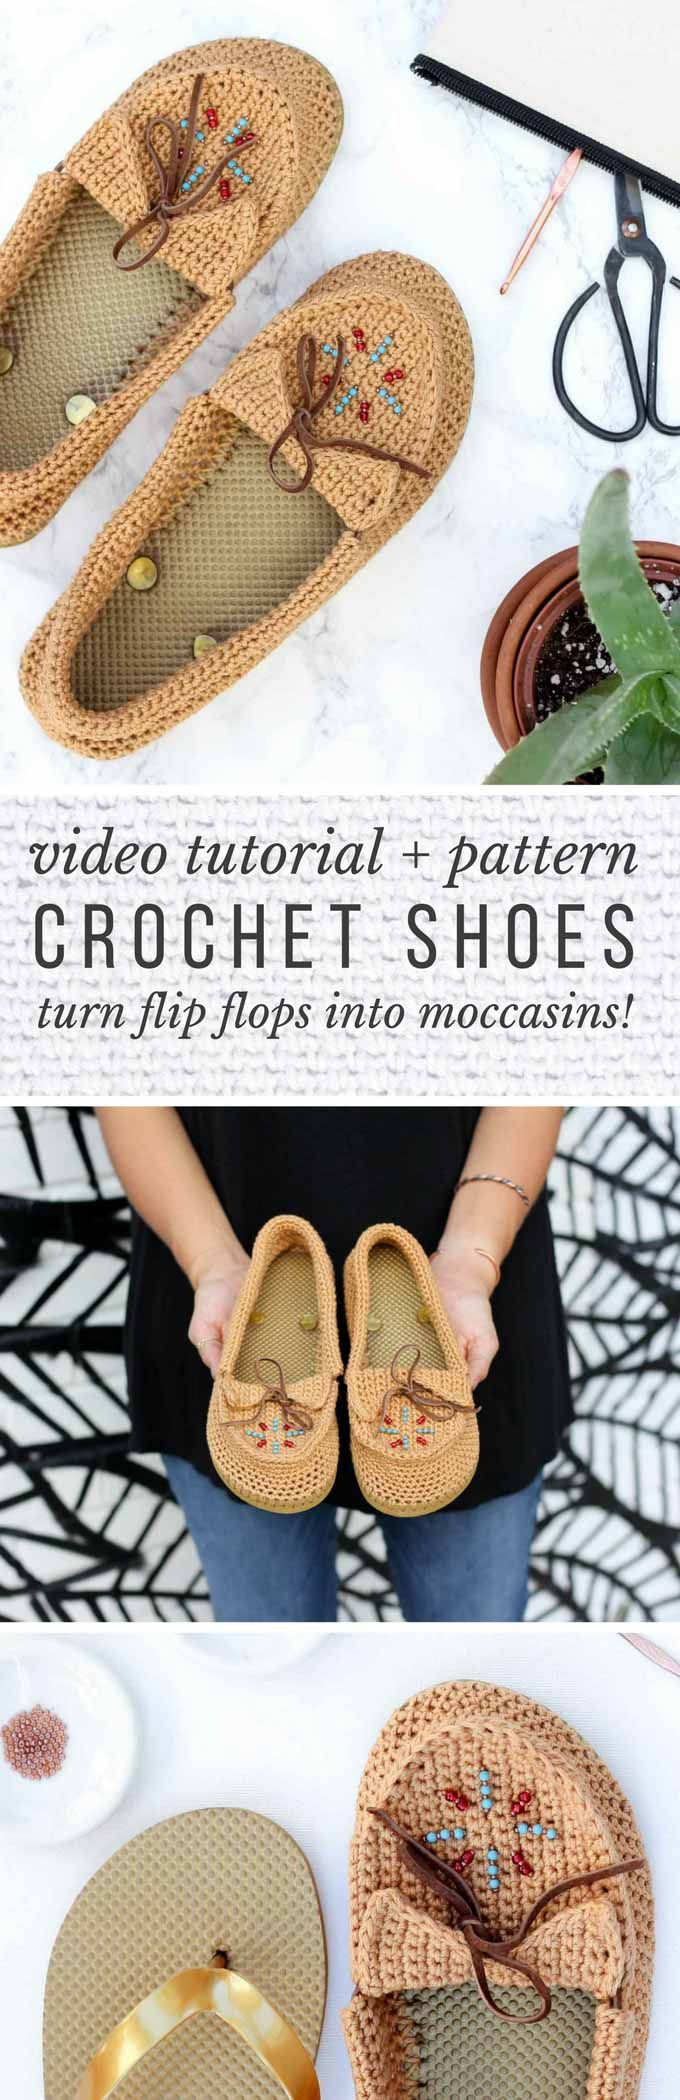 "Calling all boho fans! Learn how to crochet shoes with flip flop soles with this free crochet moccasin pattern and video tutorial! These modern crochet moccasins make super comfortable women's shoes or slippers and can be customized however you wish. Made from Lion Brand 24/7 Cotton in ""Camel"" color."